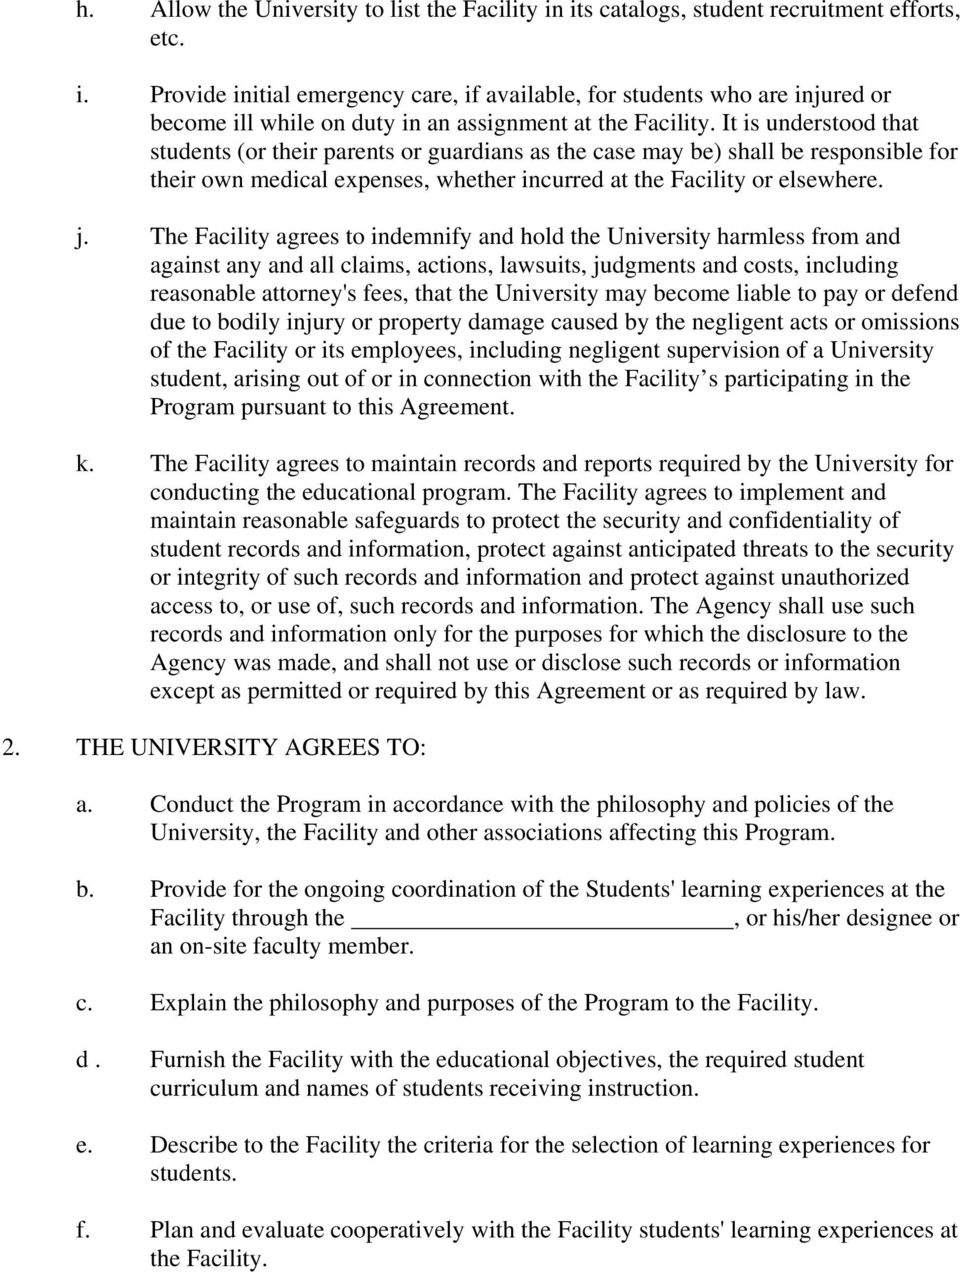 The Facility agrees to indemnify and hold the University harmless from and against any and all claims, actions, lawsuits, judgments and costs, including reasonable attorney's fees, that the